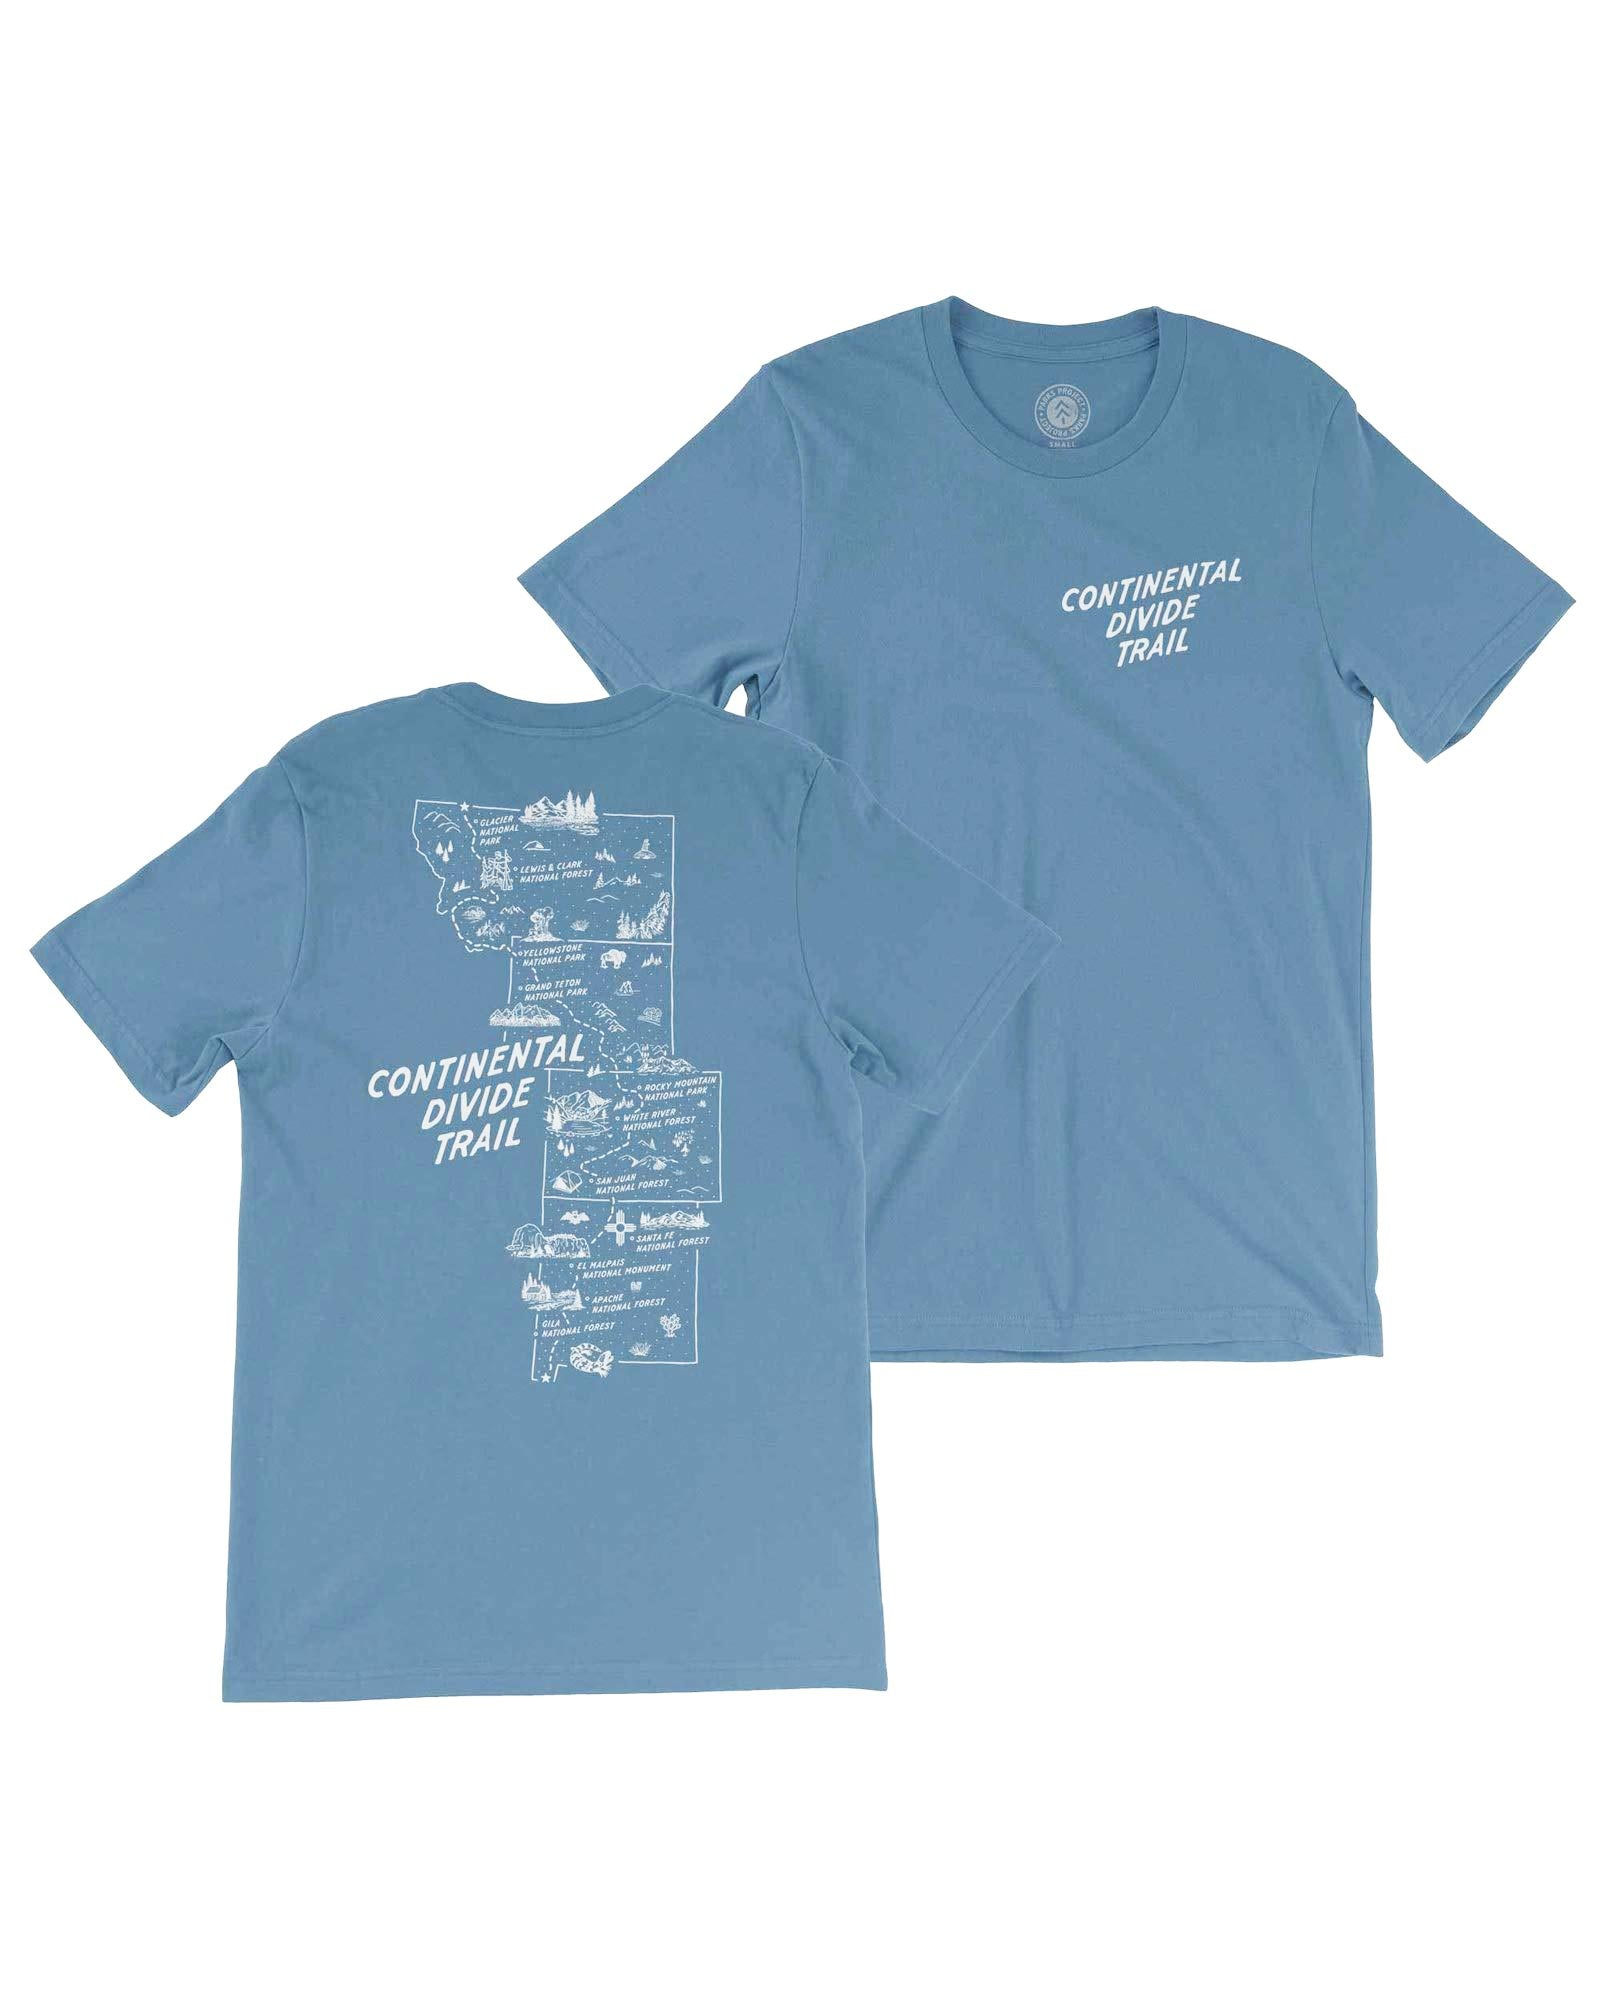 National Trail Tees